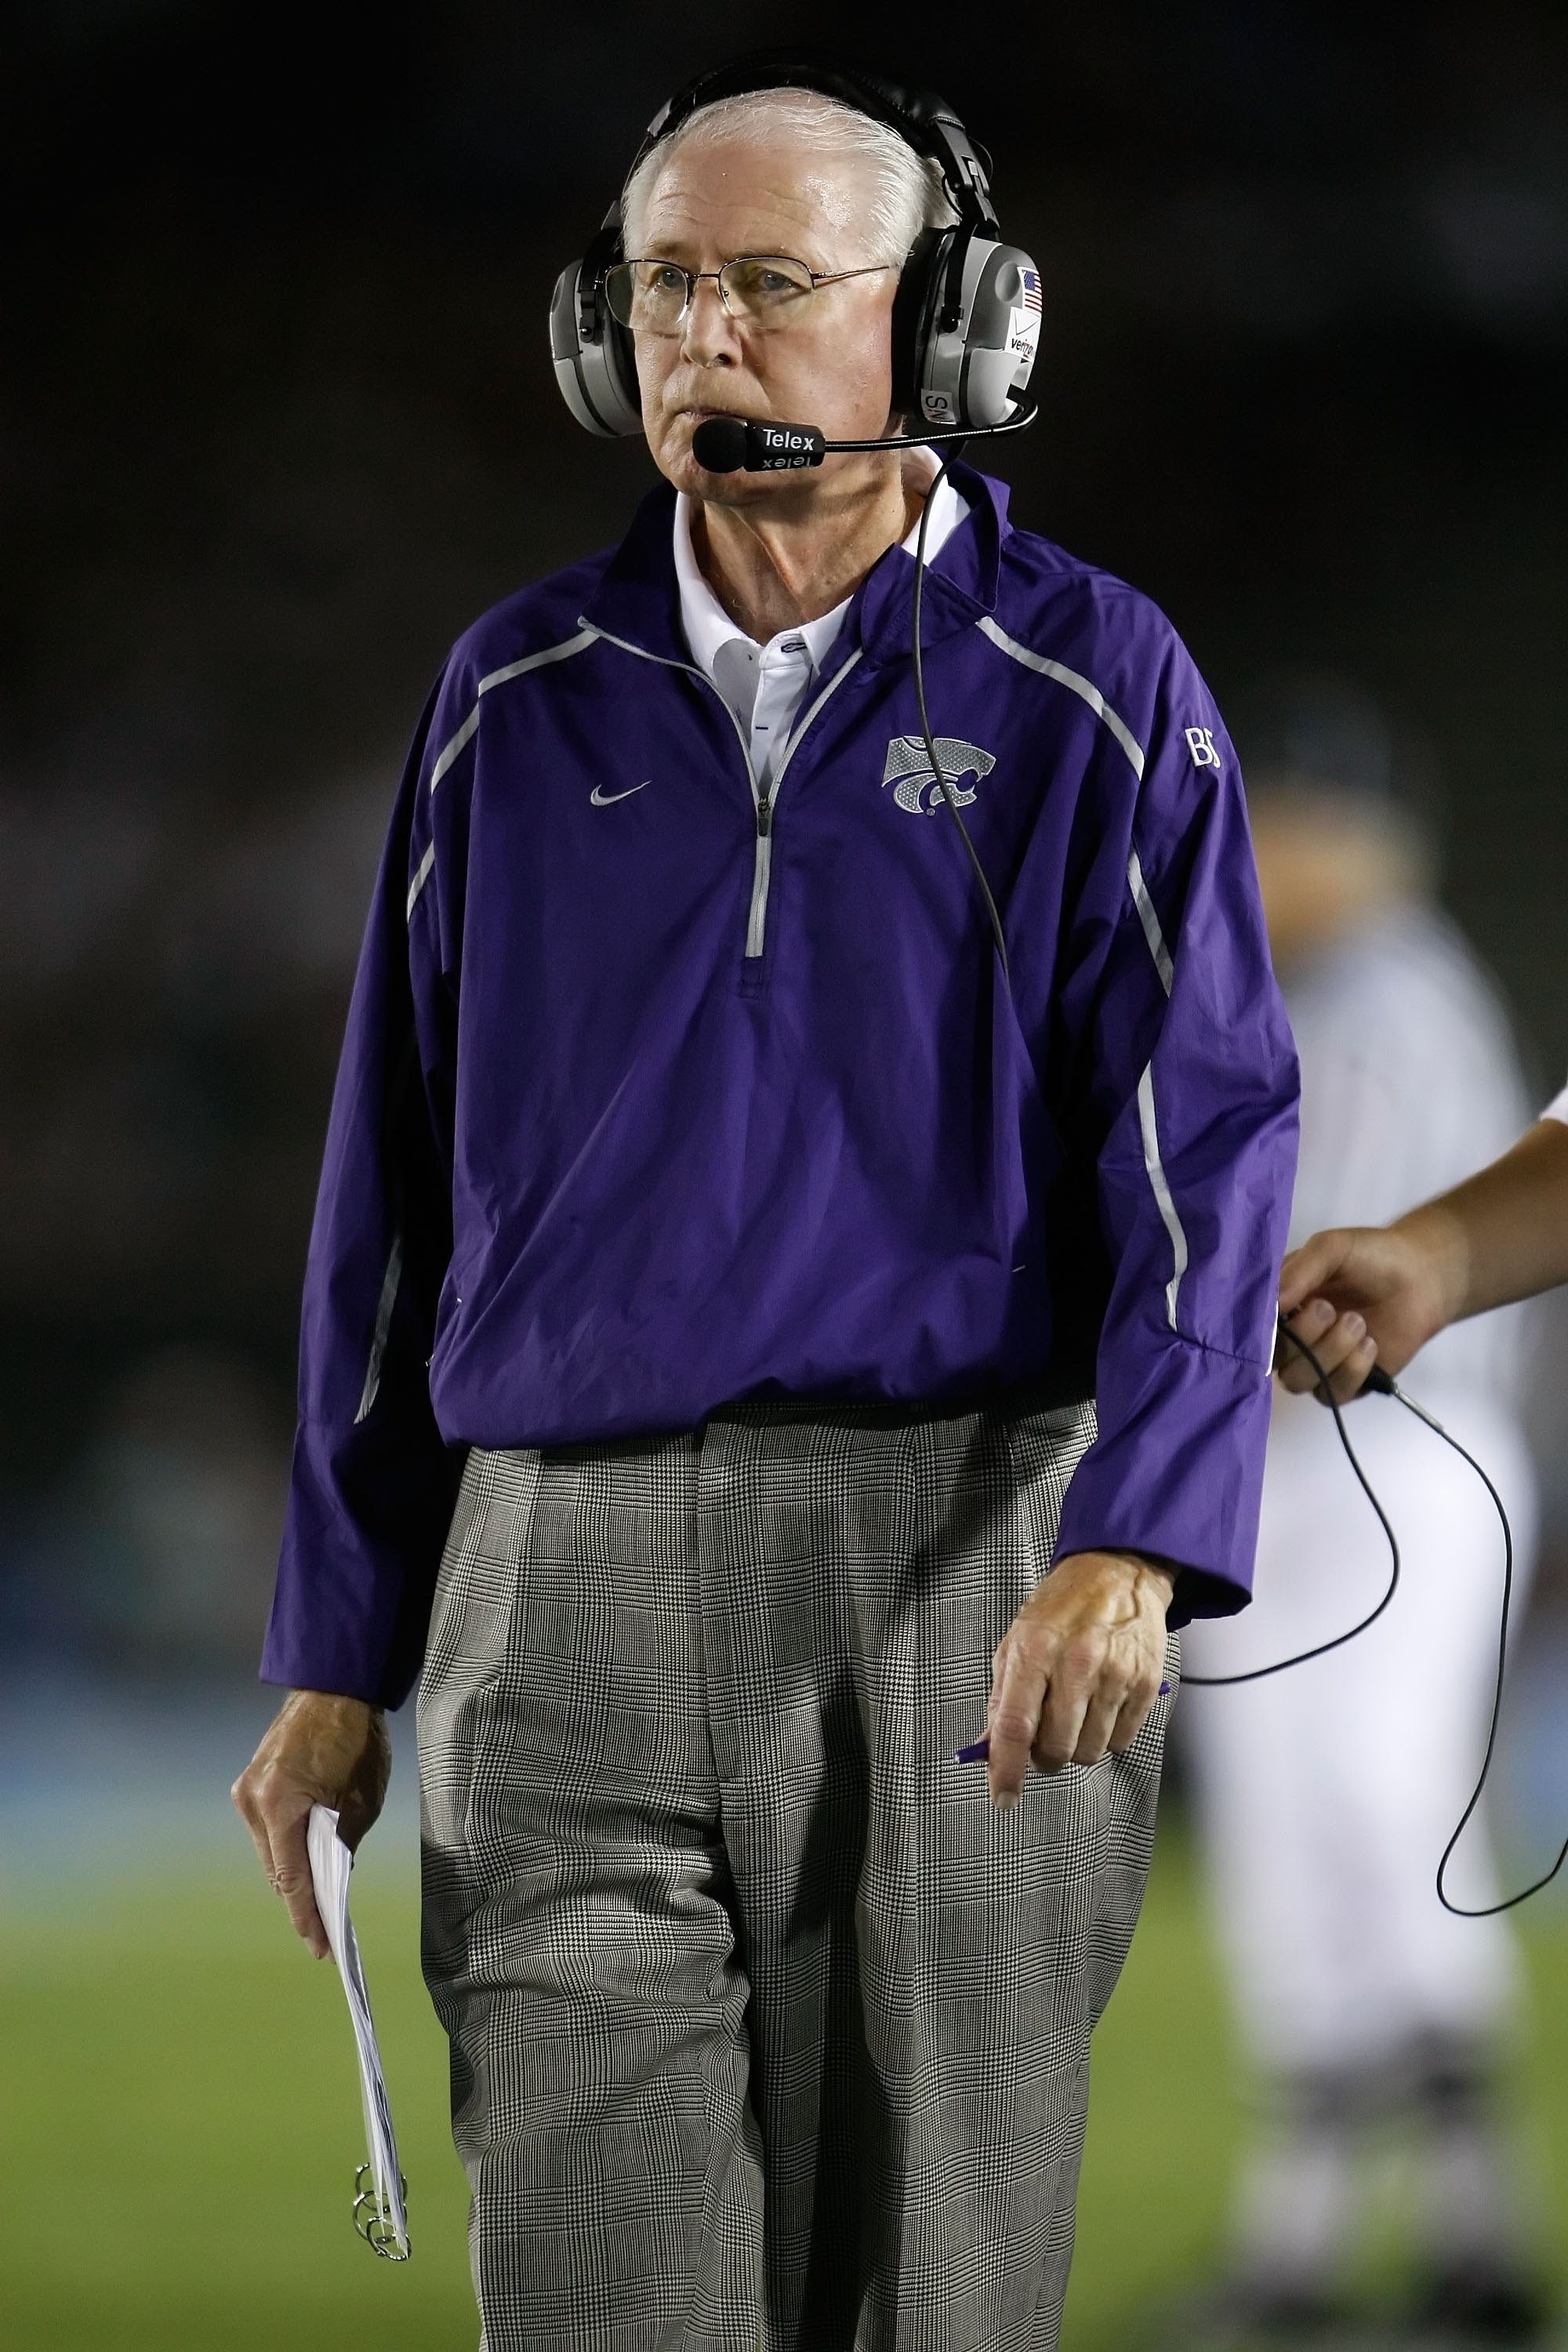 PASADENA, CA - SEPTEMBER 19:  Kansas State Wildcats head coach Bill Snyder looks on against the UCLA Bruins at the Rose Bowl on September 19, 2009 in Pasadena, California. UCLA defeated Kansas State 23-9.  (Photo by Jeff Gross/Getty Images)